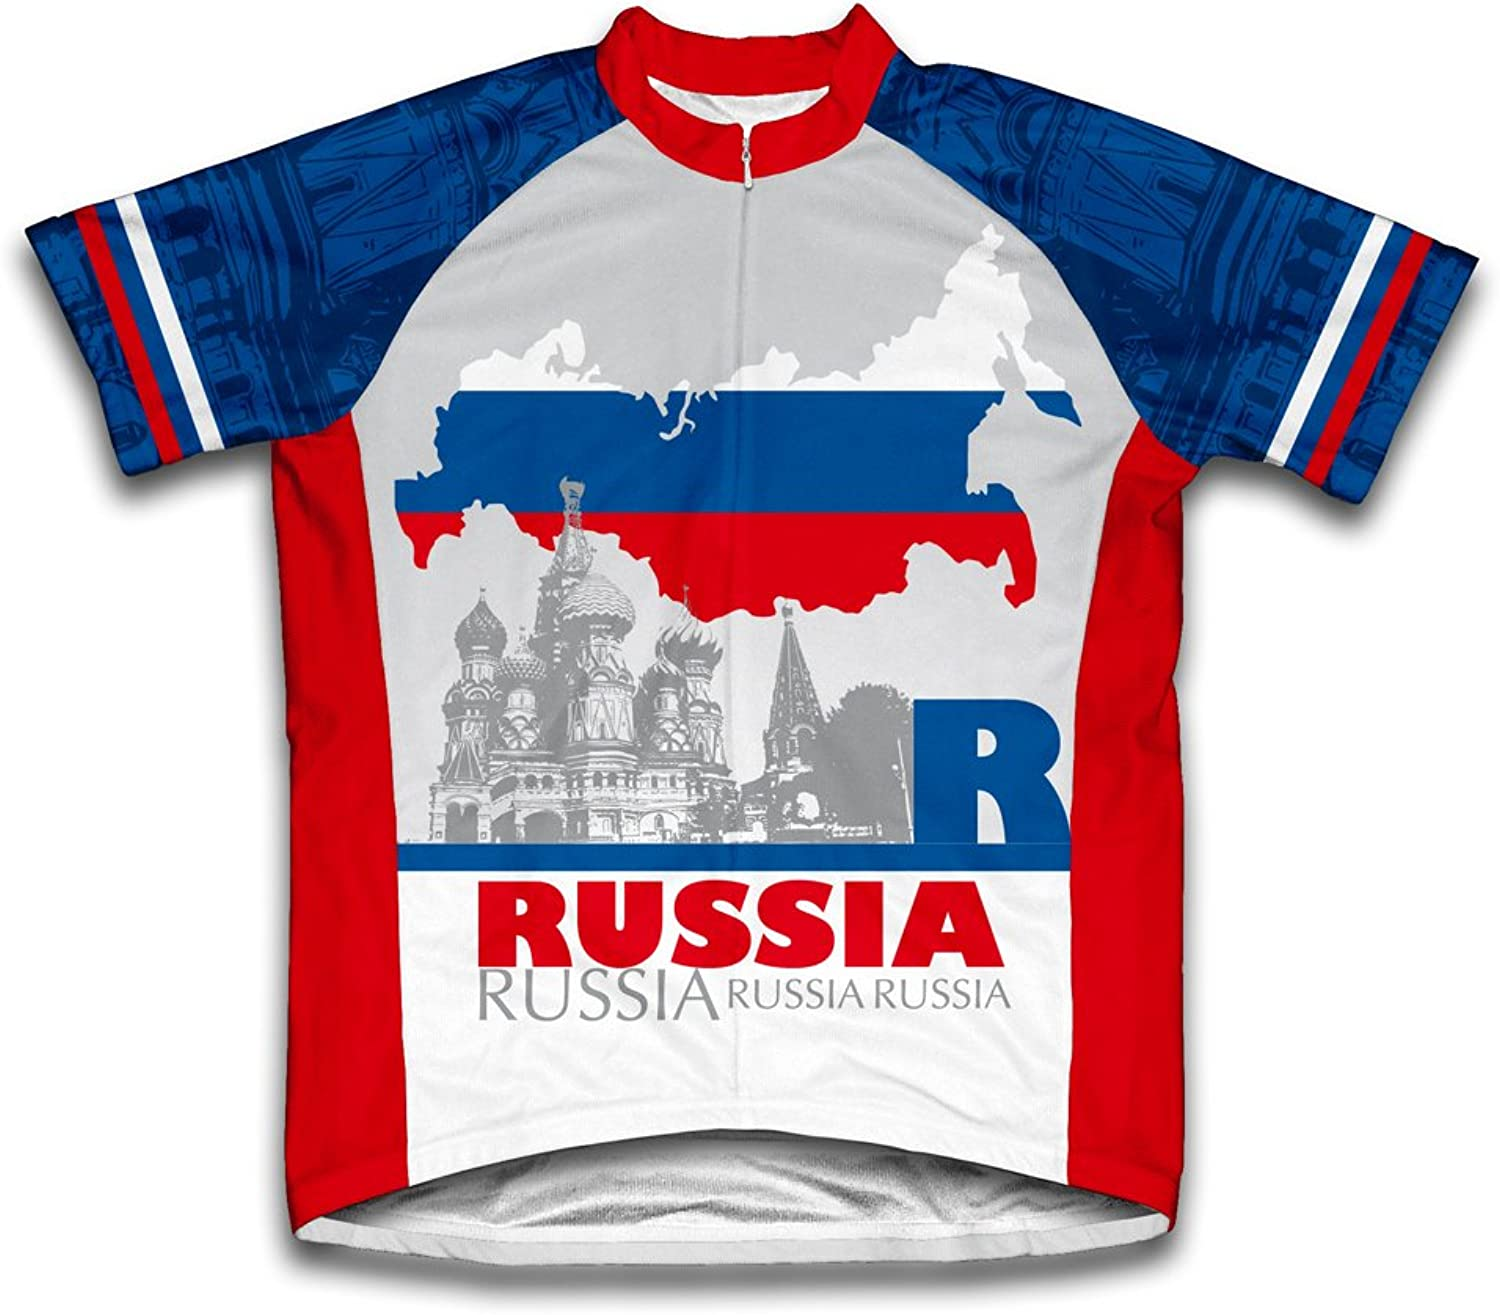 729ed4ac652 Russia Short Cycling Jersey for Youth ScudoPro Sleeve nwqlqn6067 ...